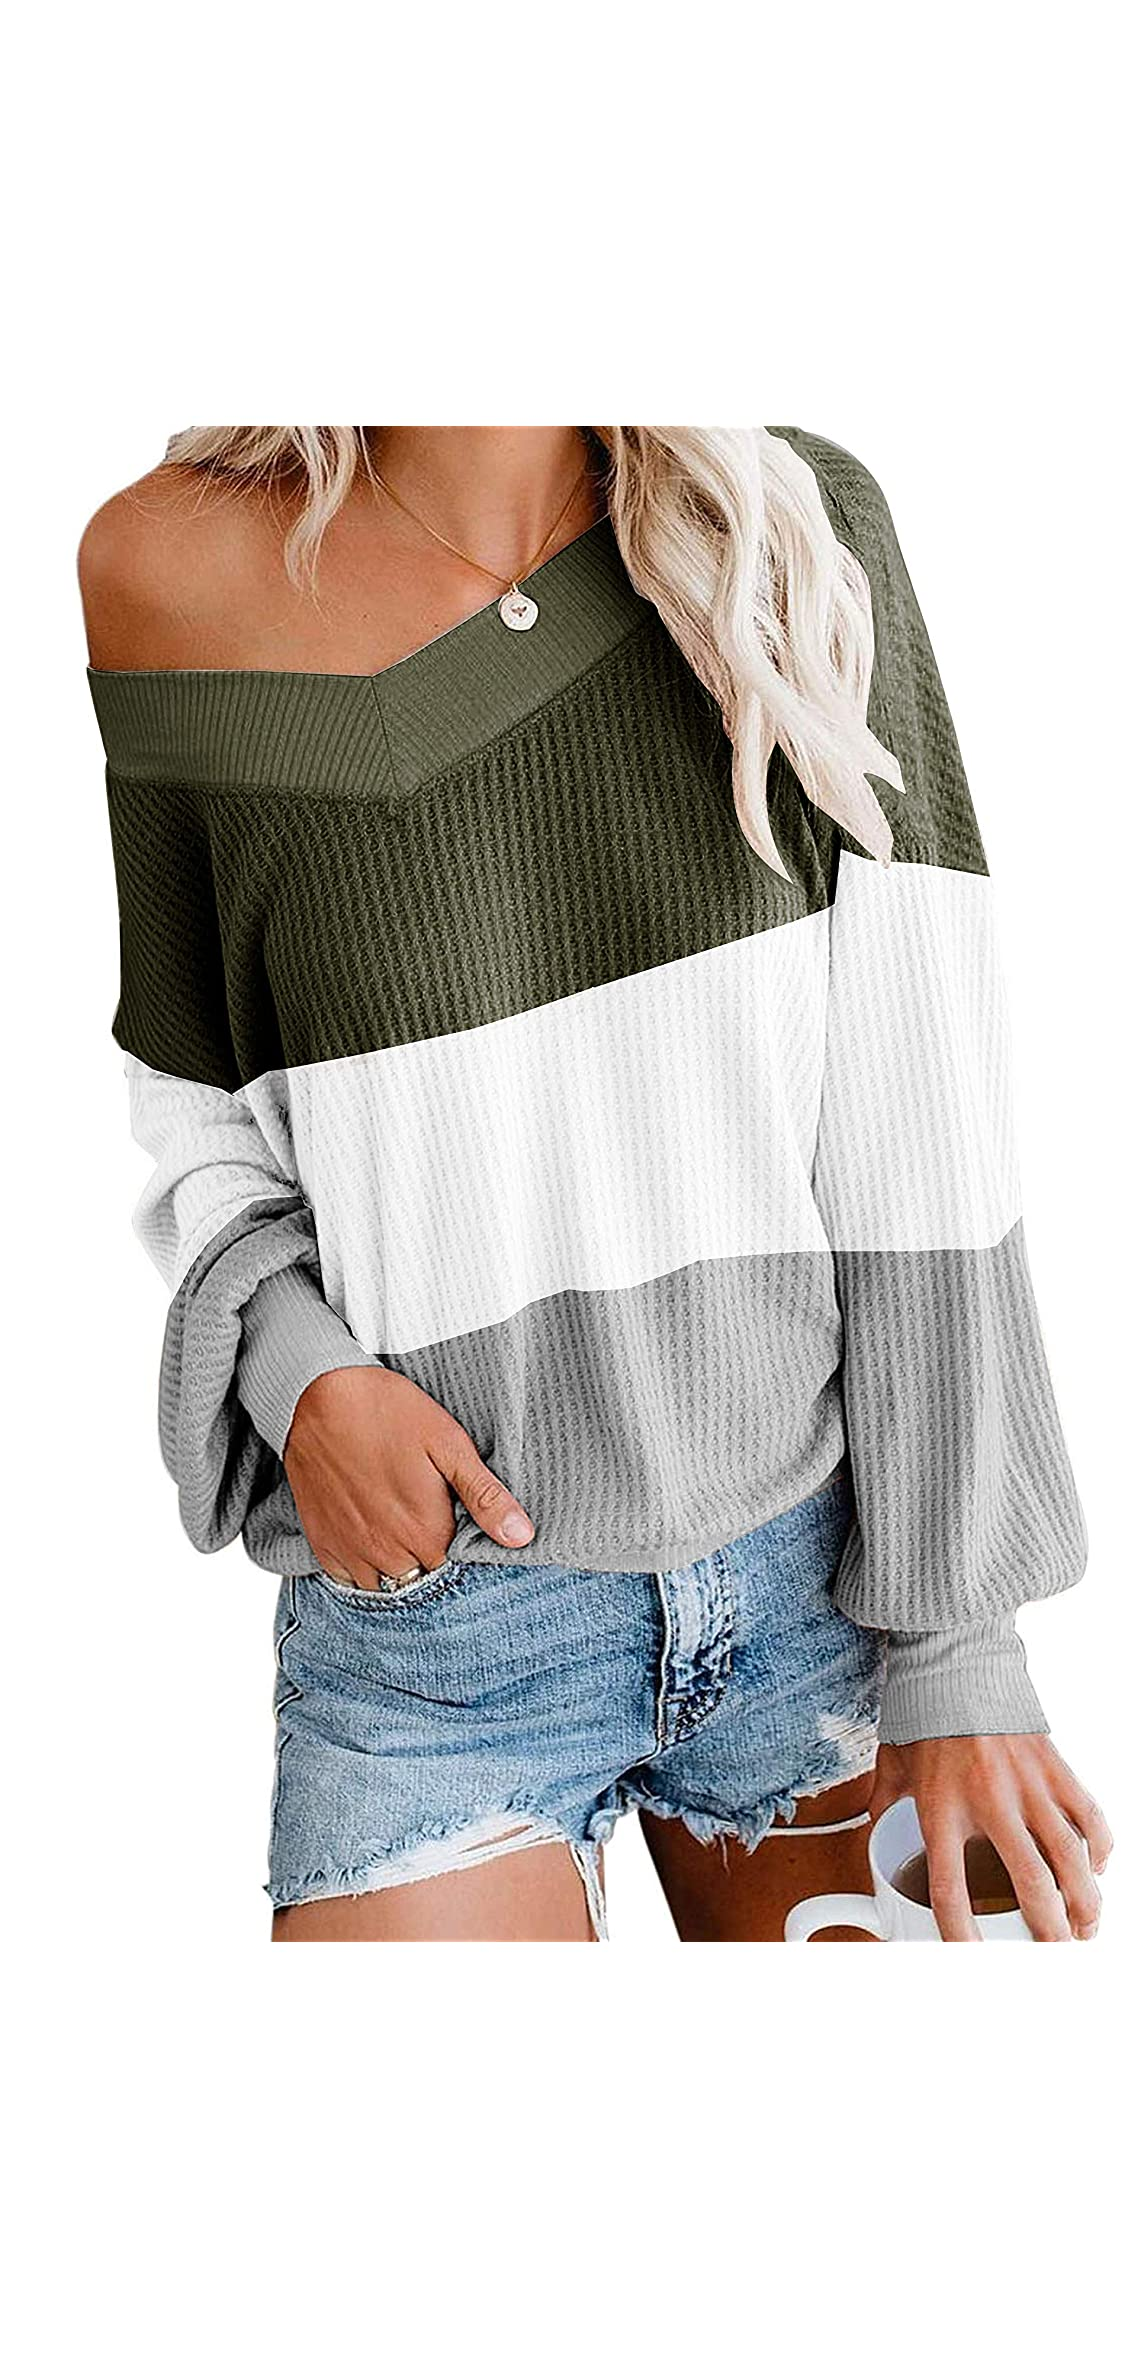 Women's Off Shoulder Sweater Colorblock Batwing Sleeve